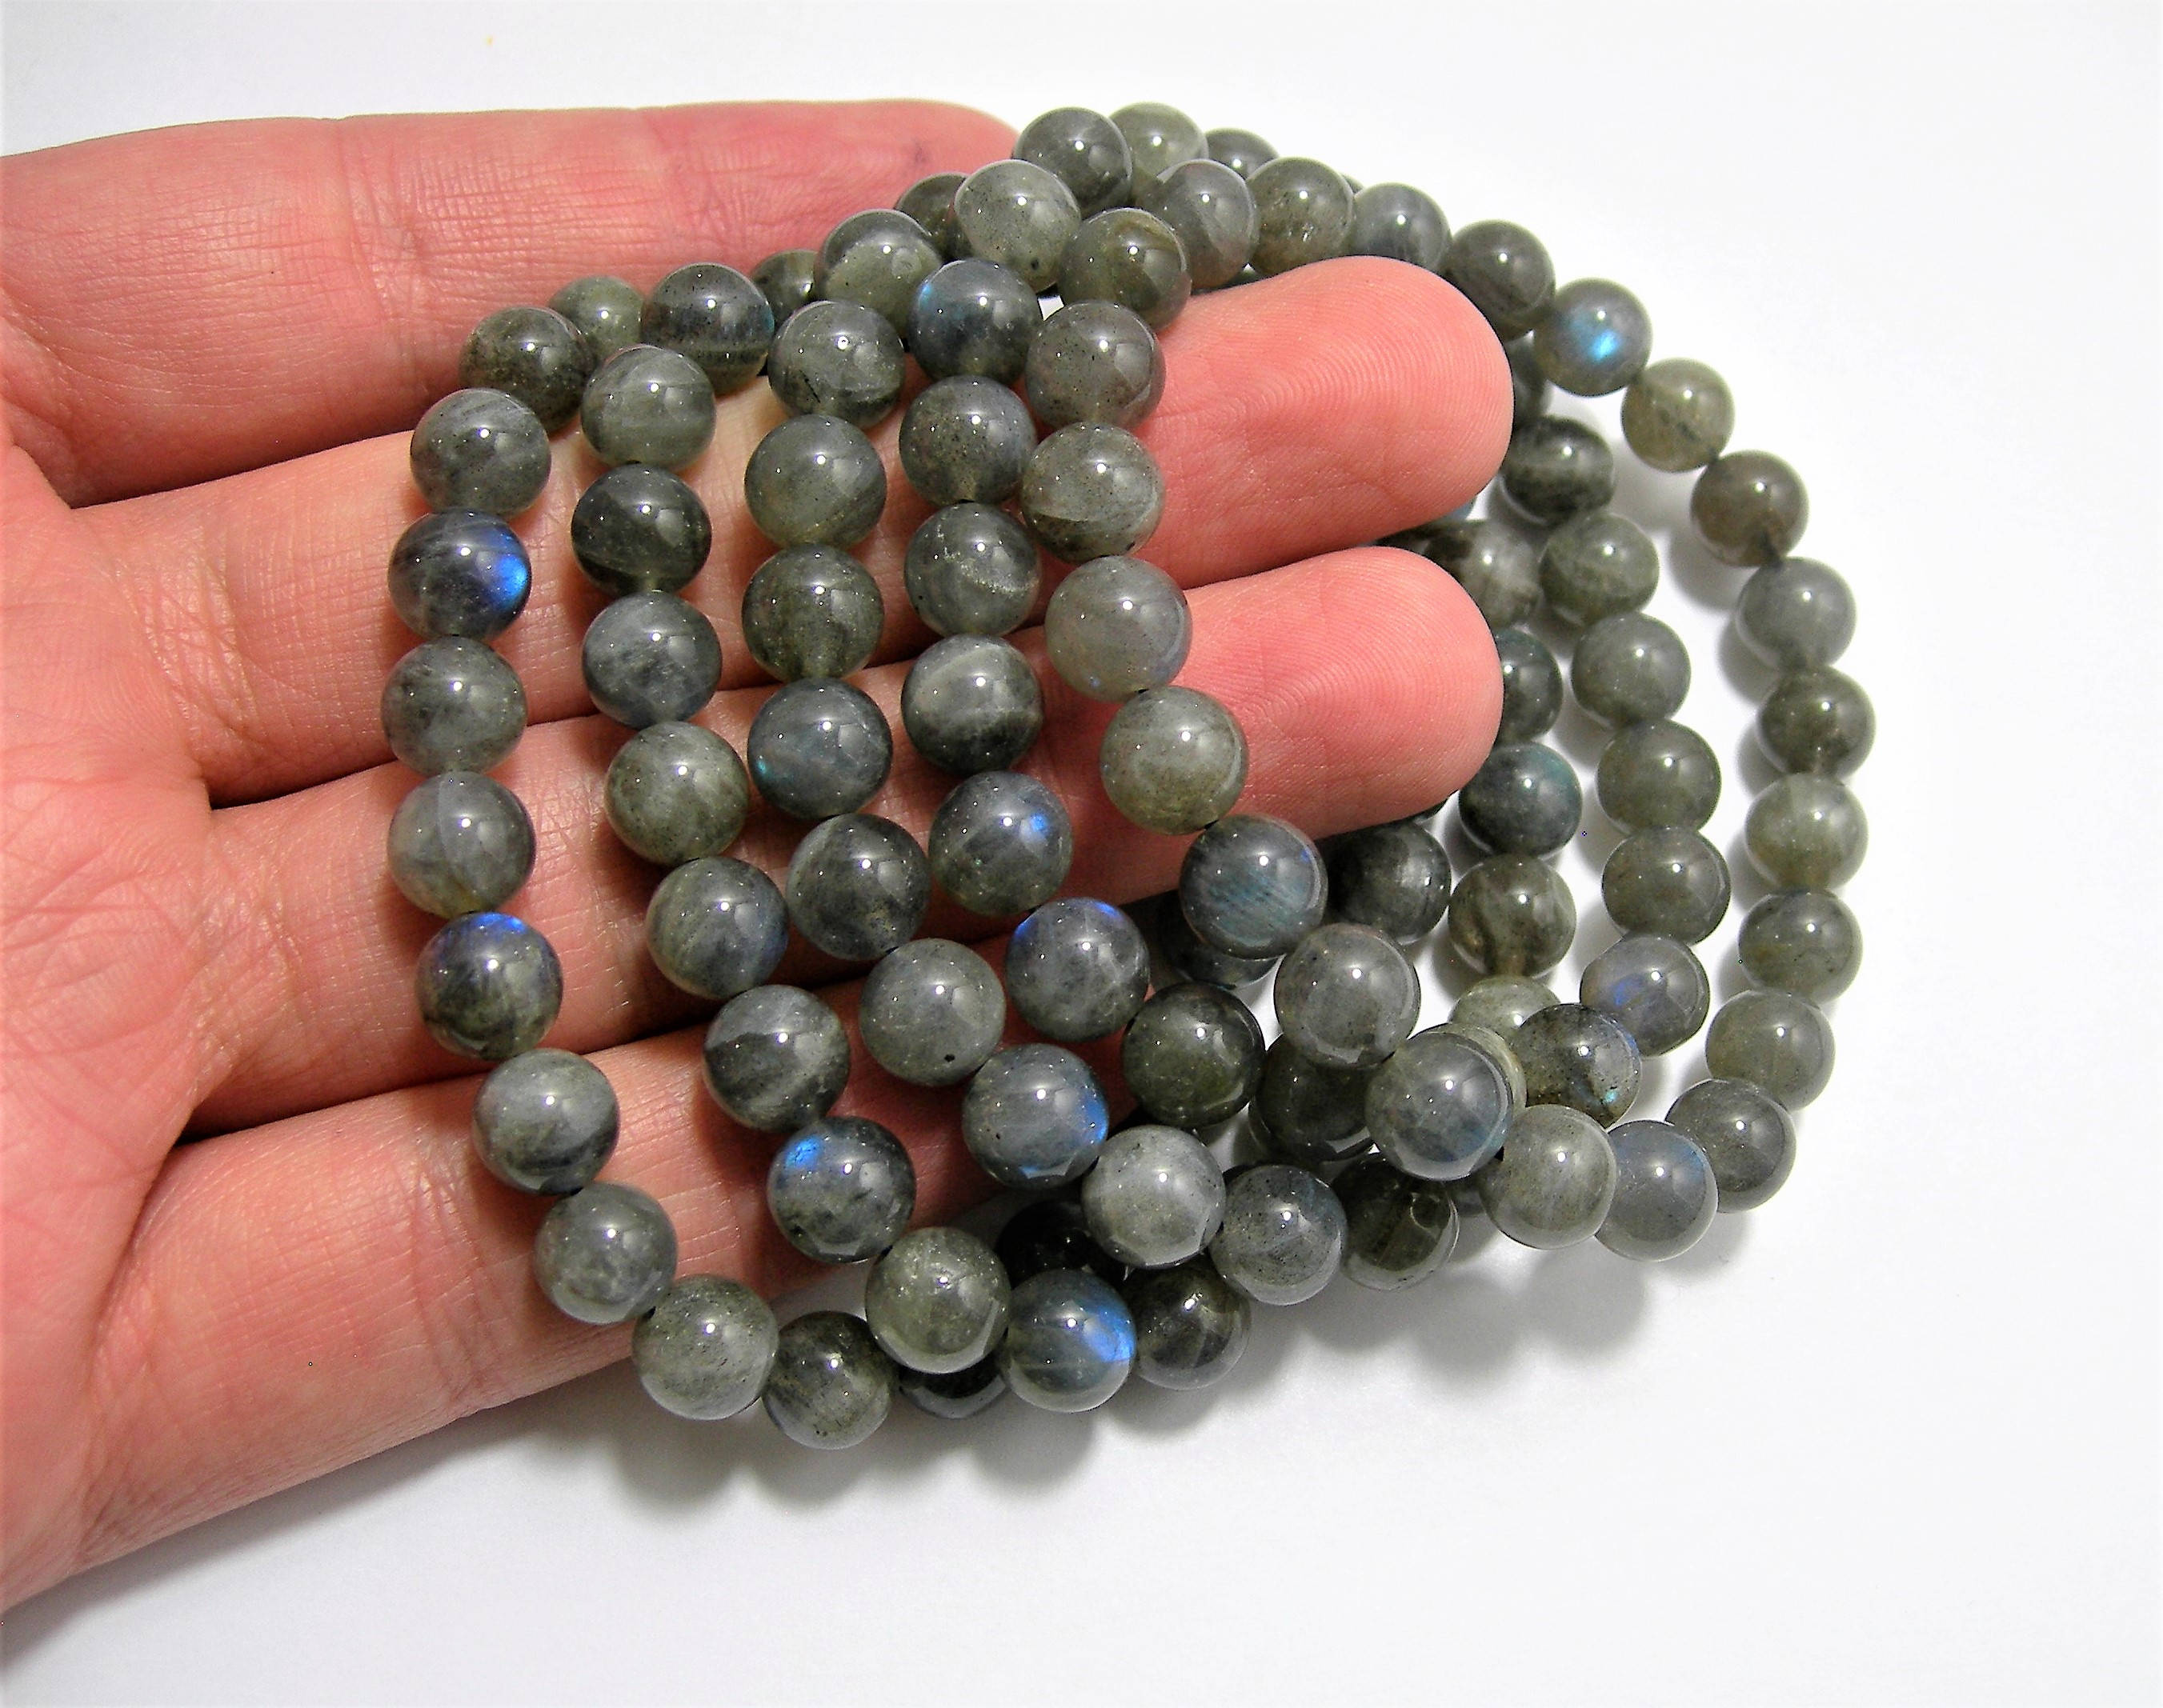 wholesale gemstone natural faceted coin gray labradorite stone loose pin beads grey